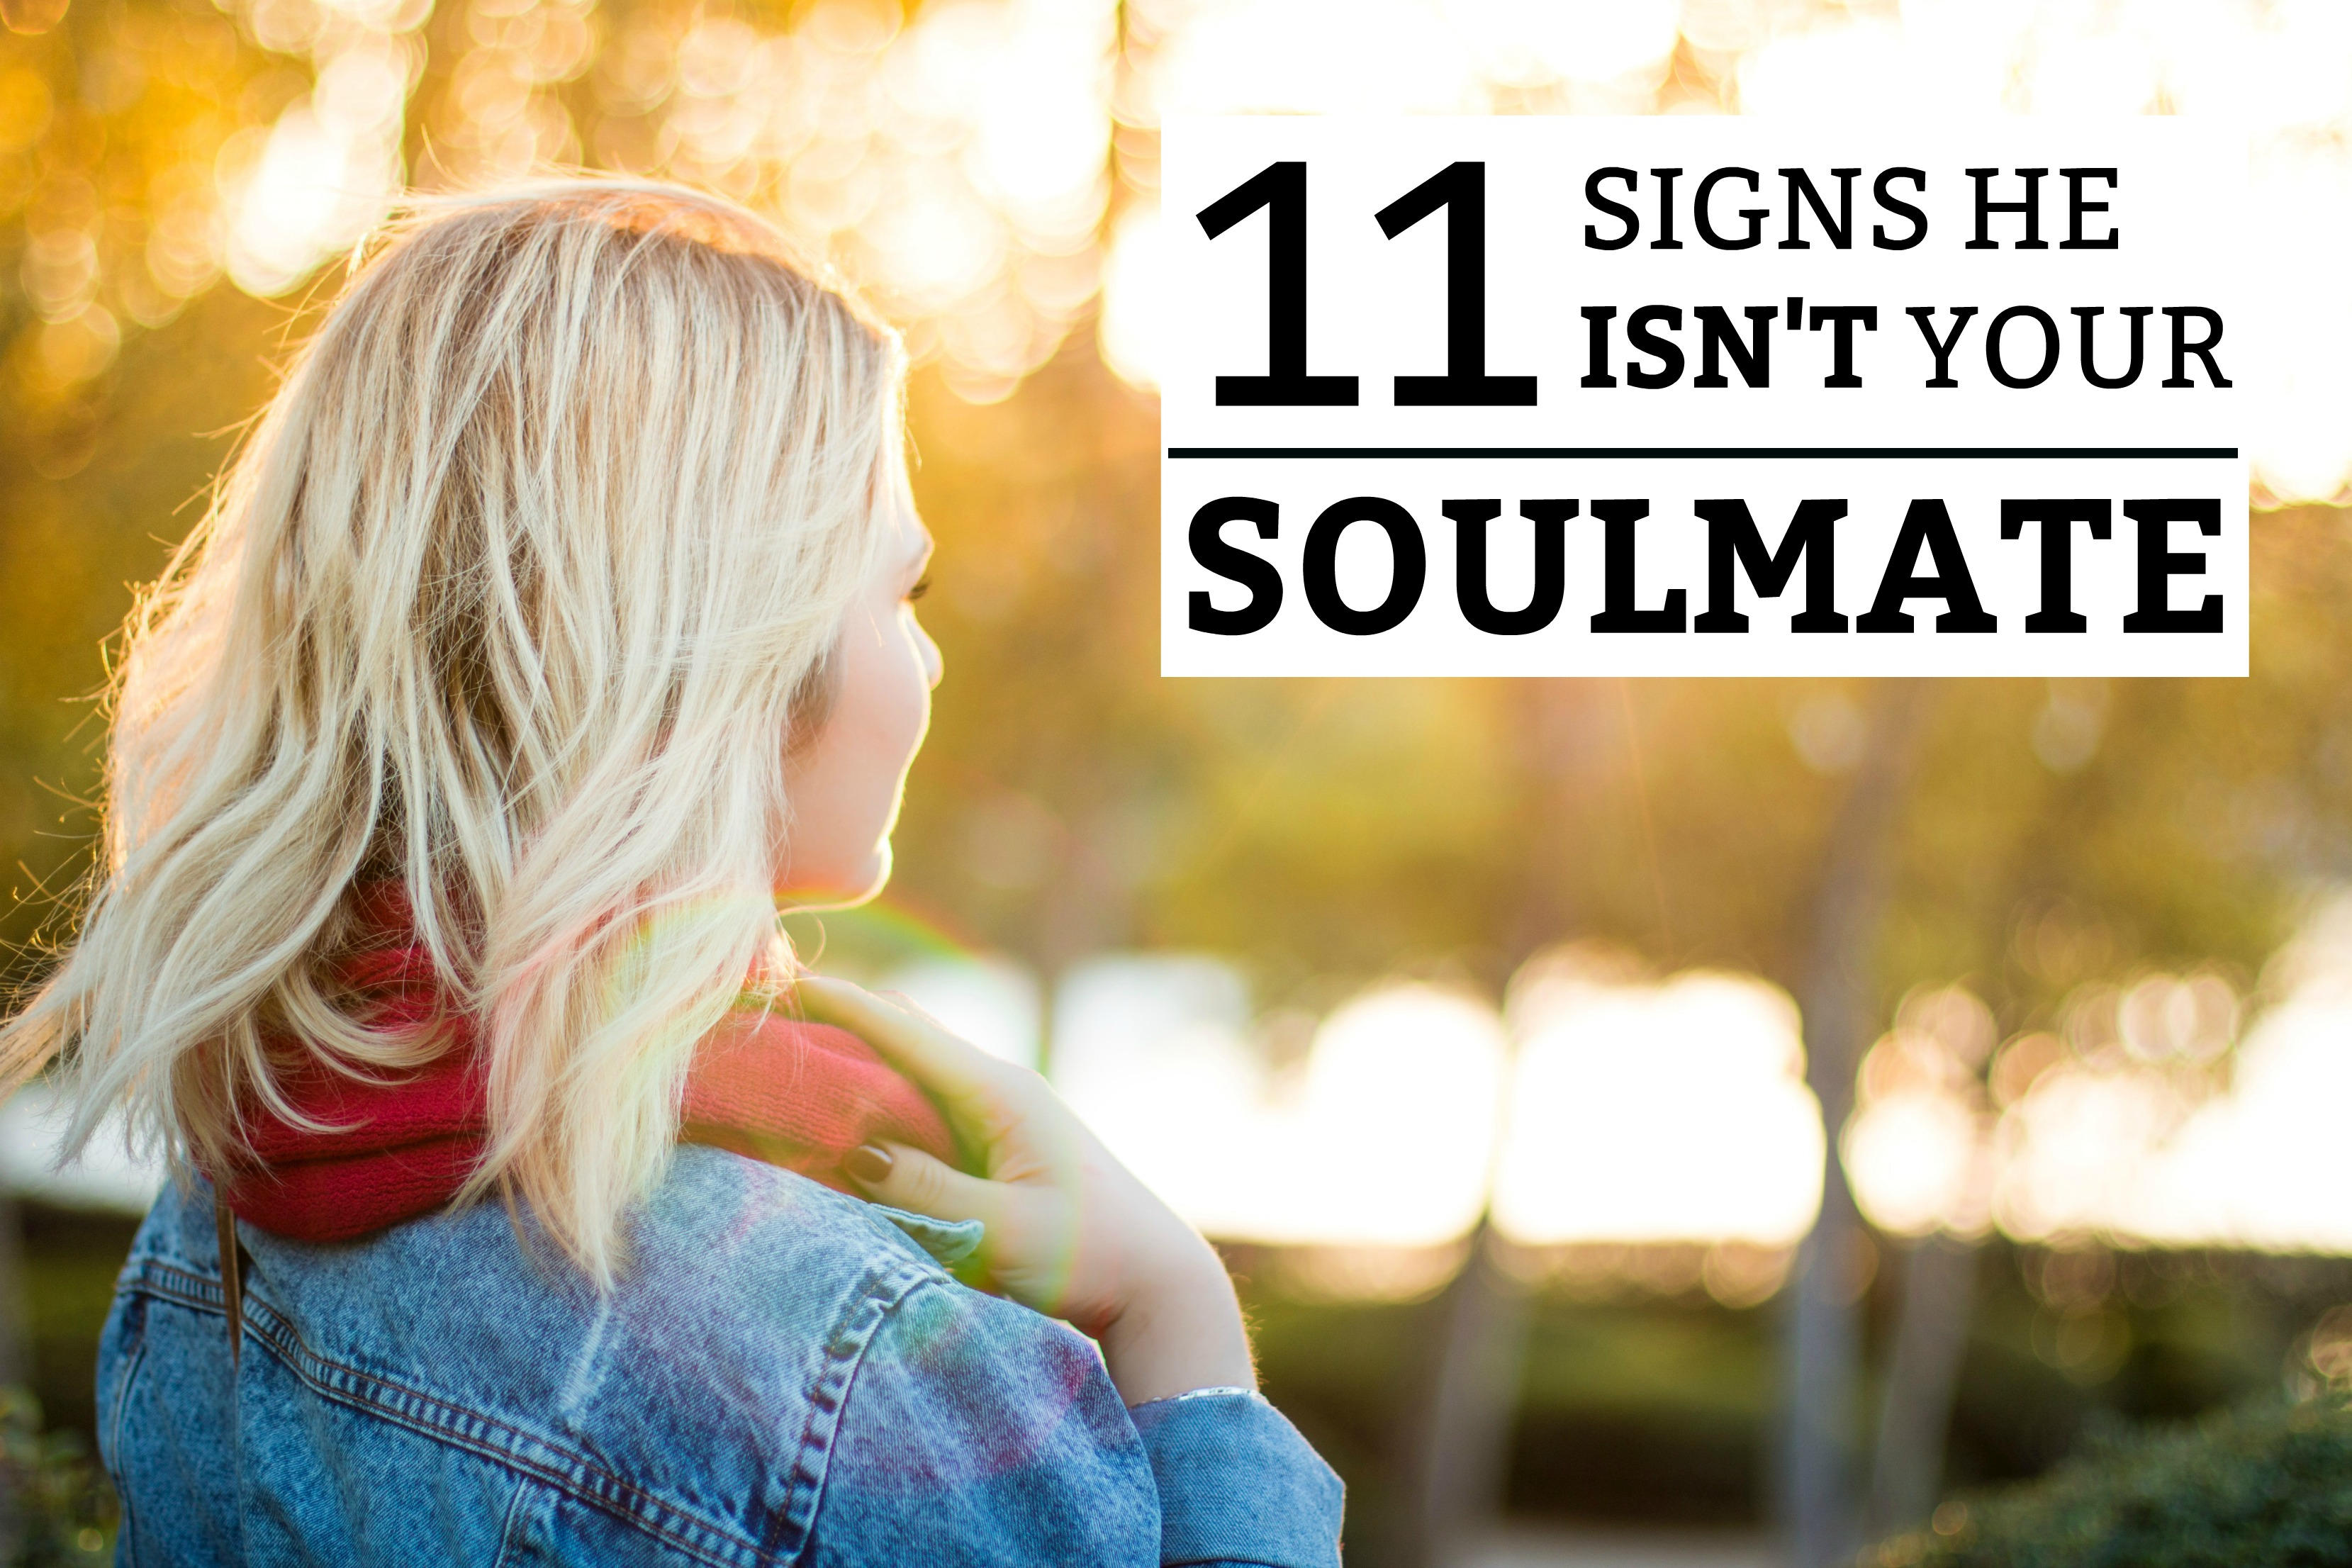 How to know if your with your soulmate